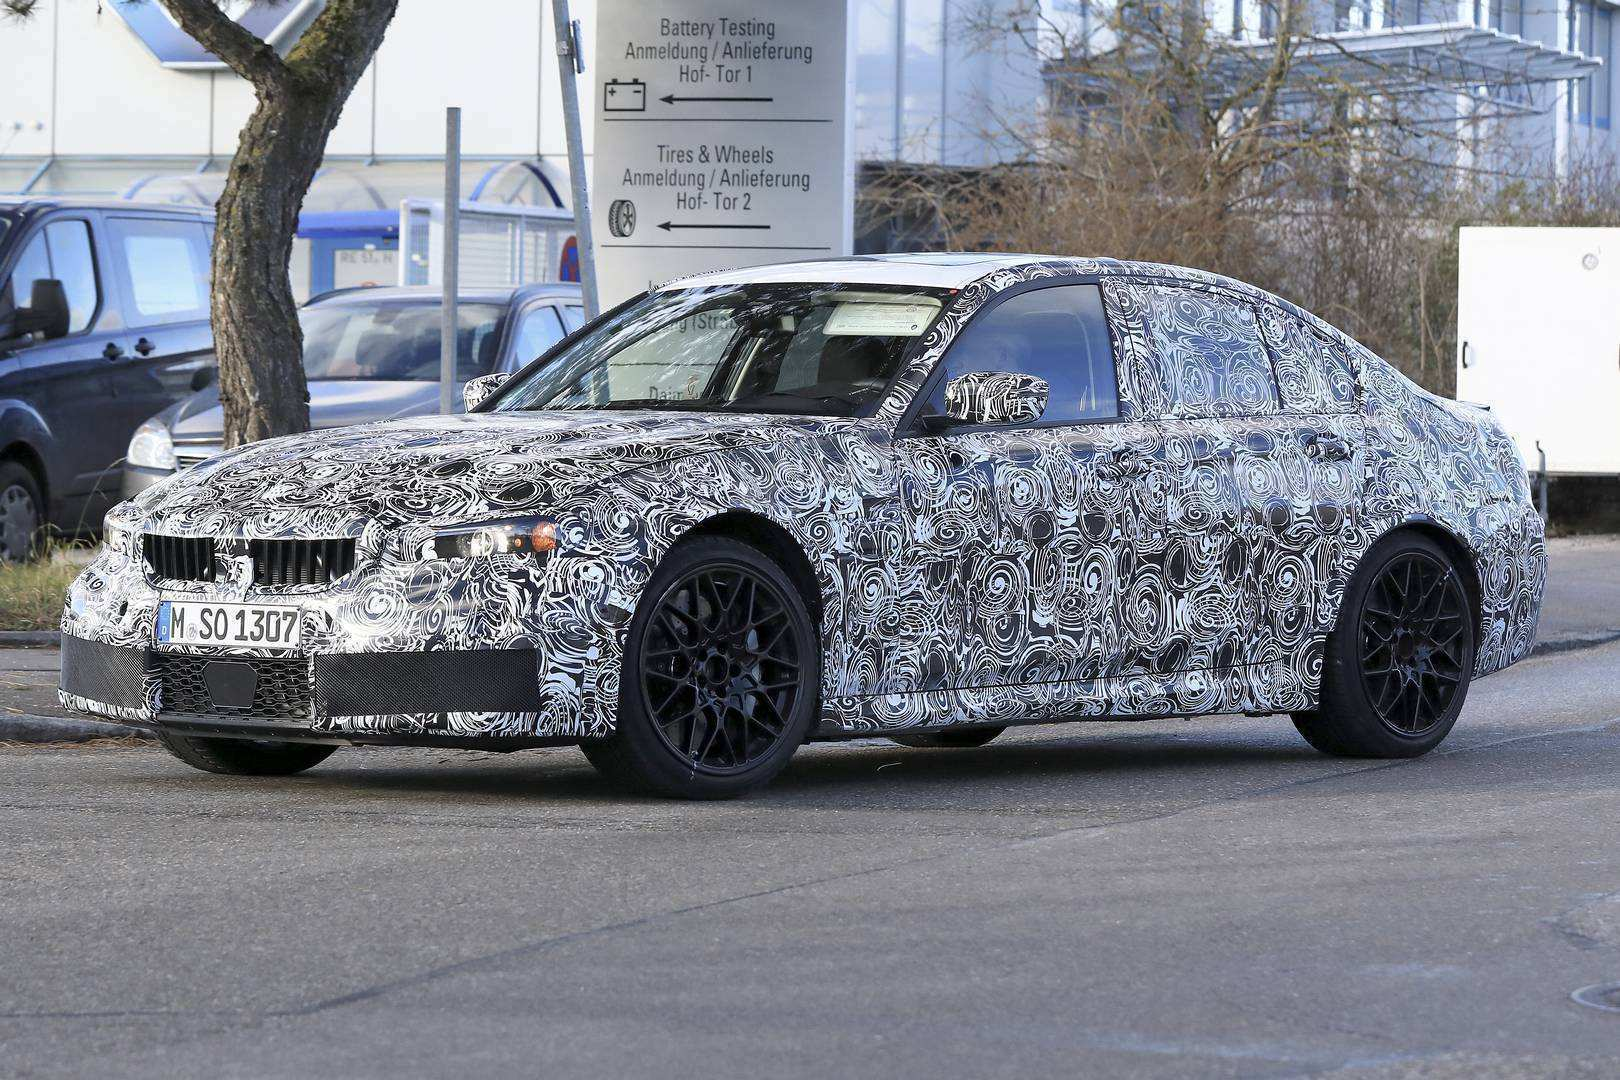 78 New Spy Shots 2020 BMW 3 Series Overview for Spy Shots 2020 BMW 3 Series